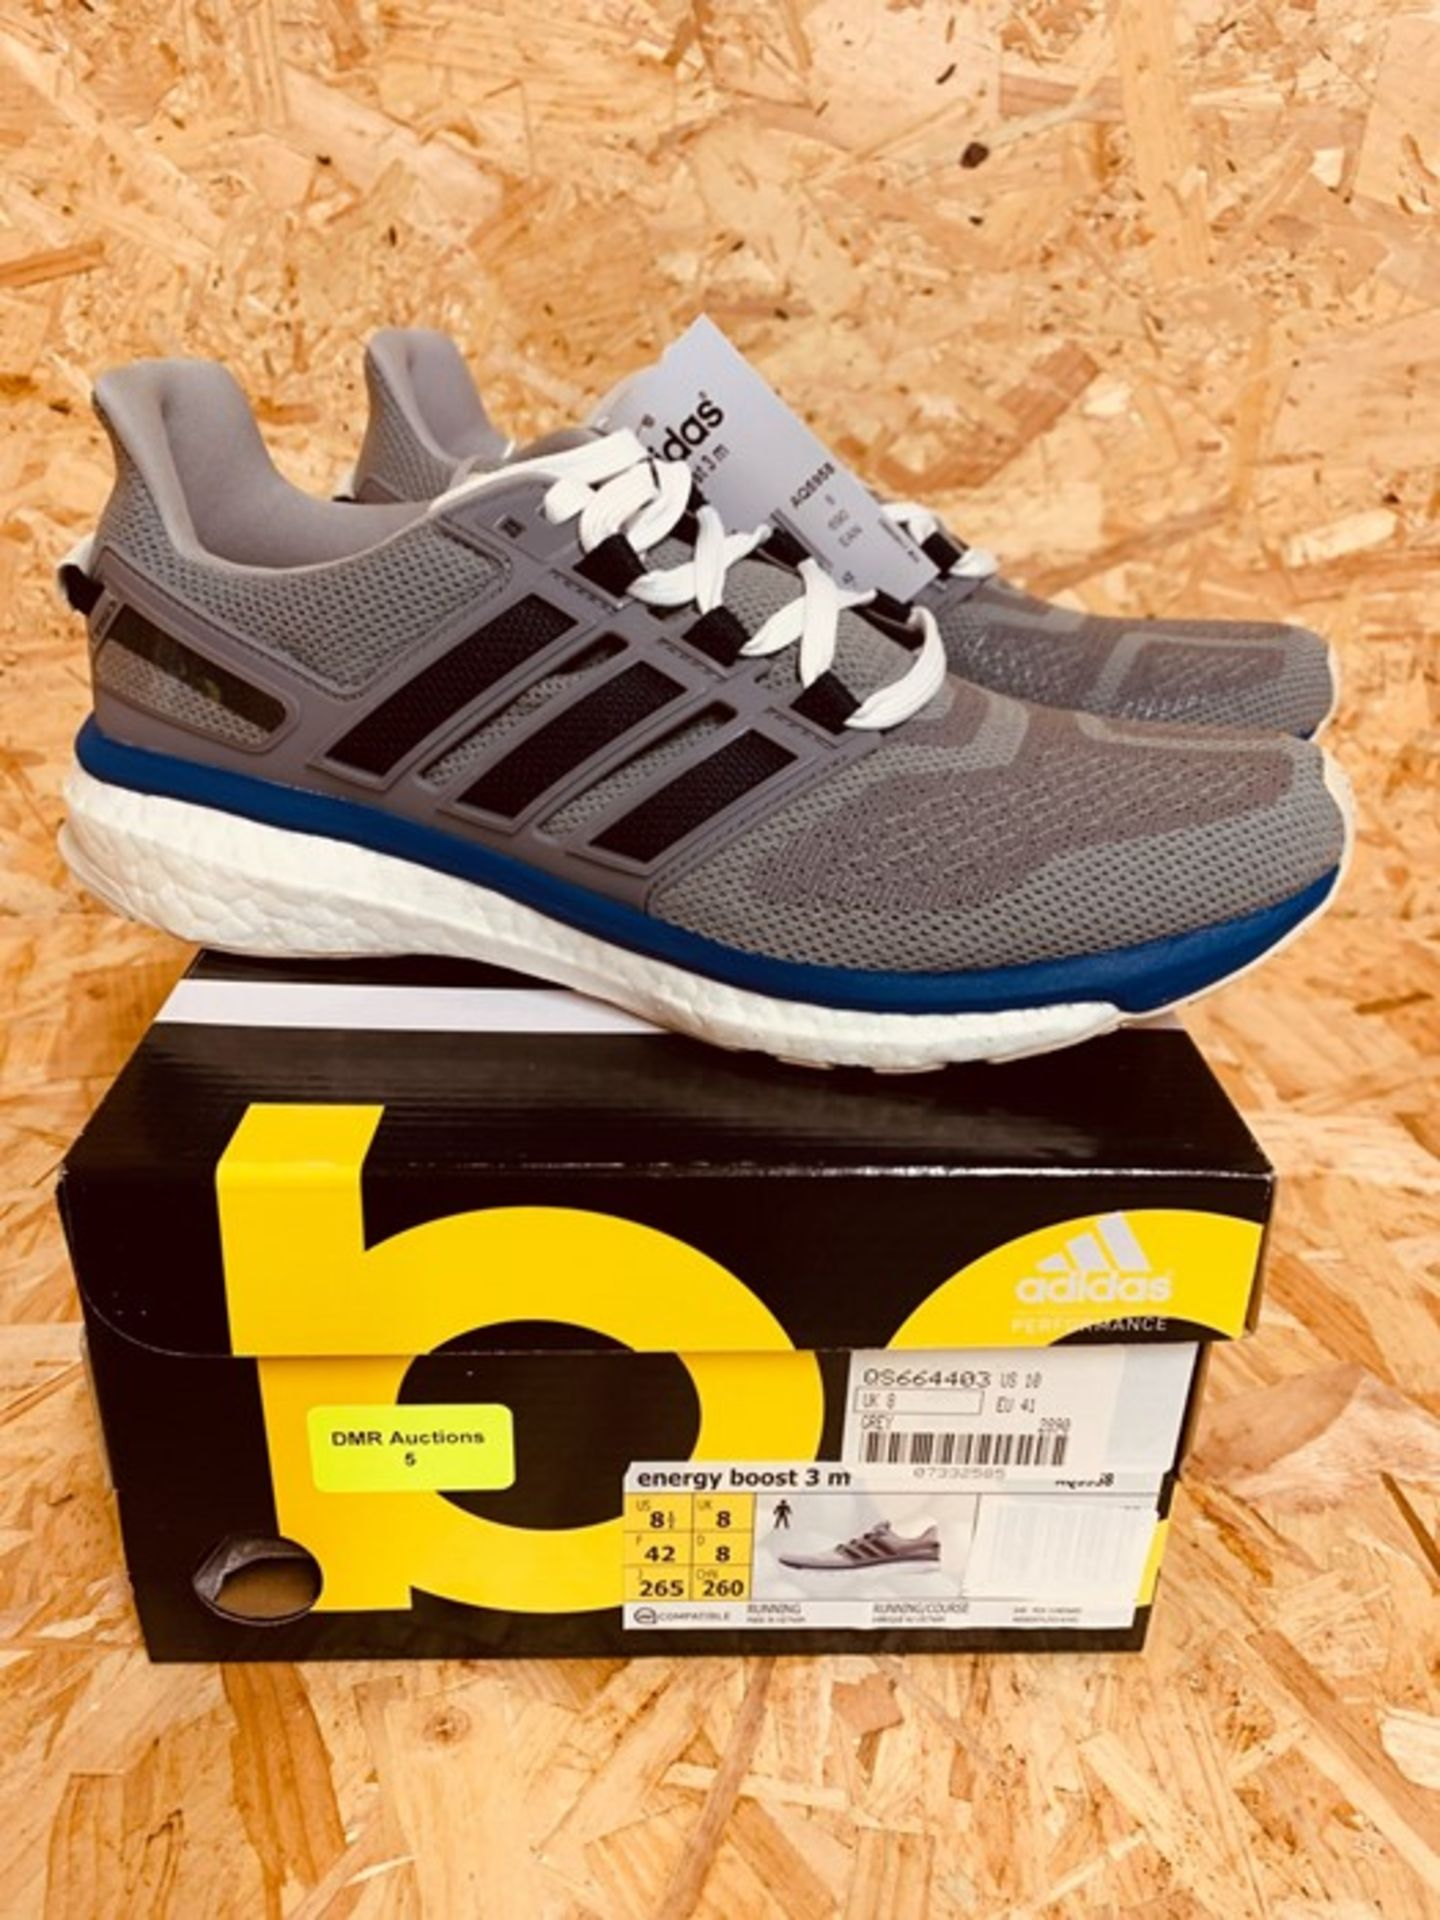 ADIDAS WOMENS ENERGY BOOST 3 M TRAINERS - UK SIZE 8/GREY